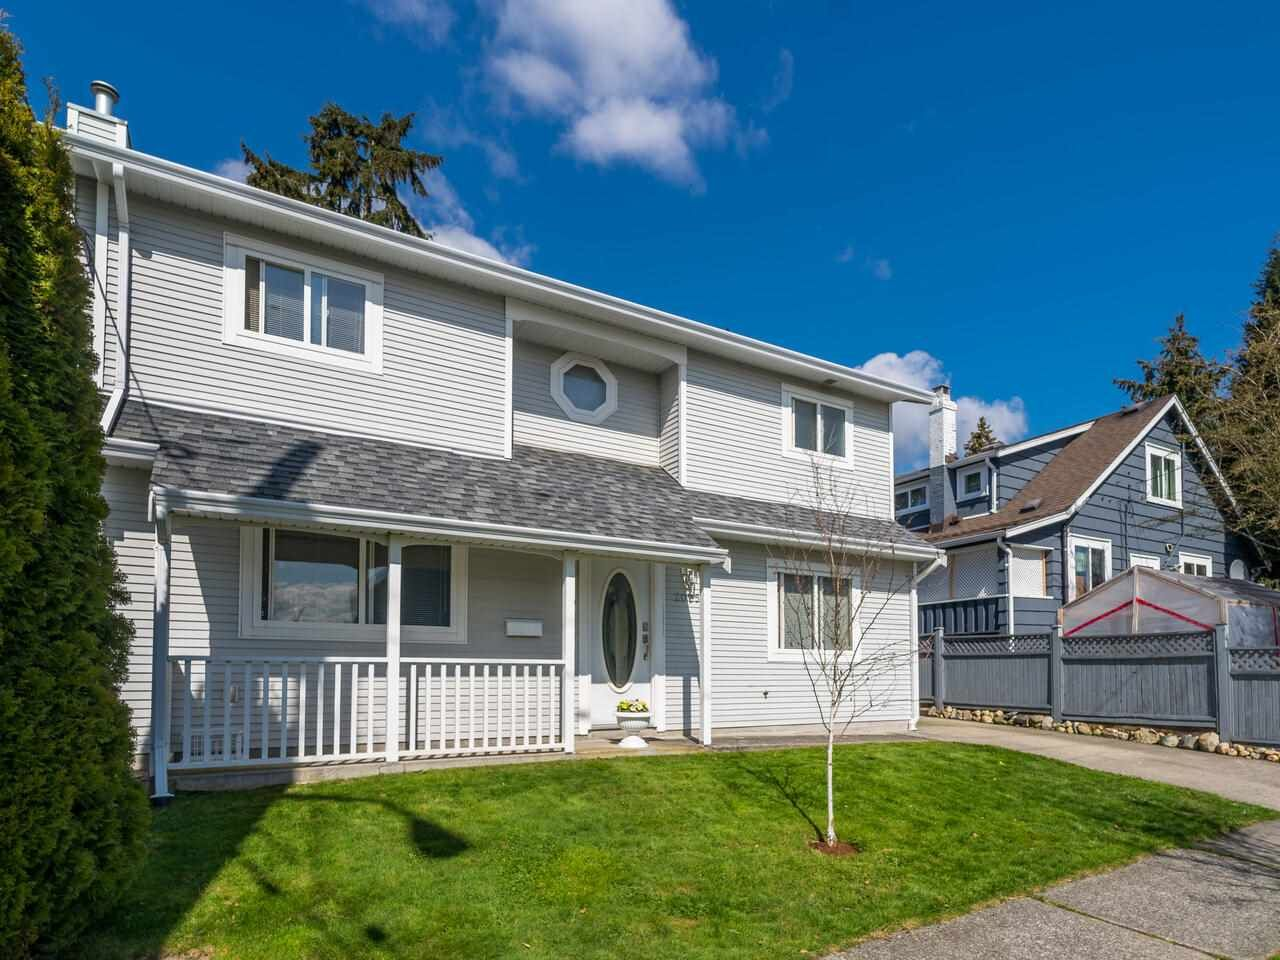 Main Photo: 2005 LONDON Street in New Westminster: Connaught Heights House for sale : MLS®# R2559146